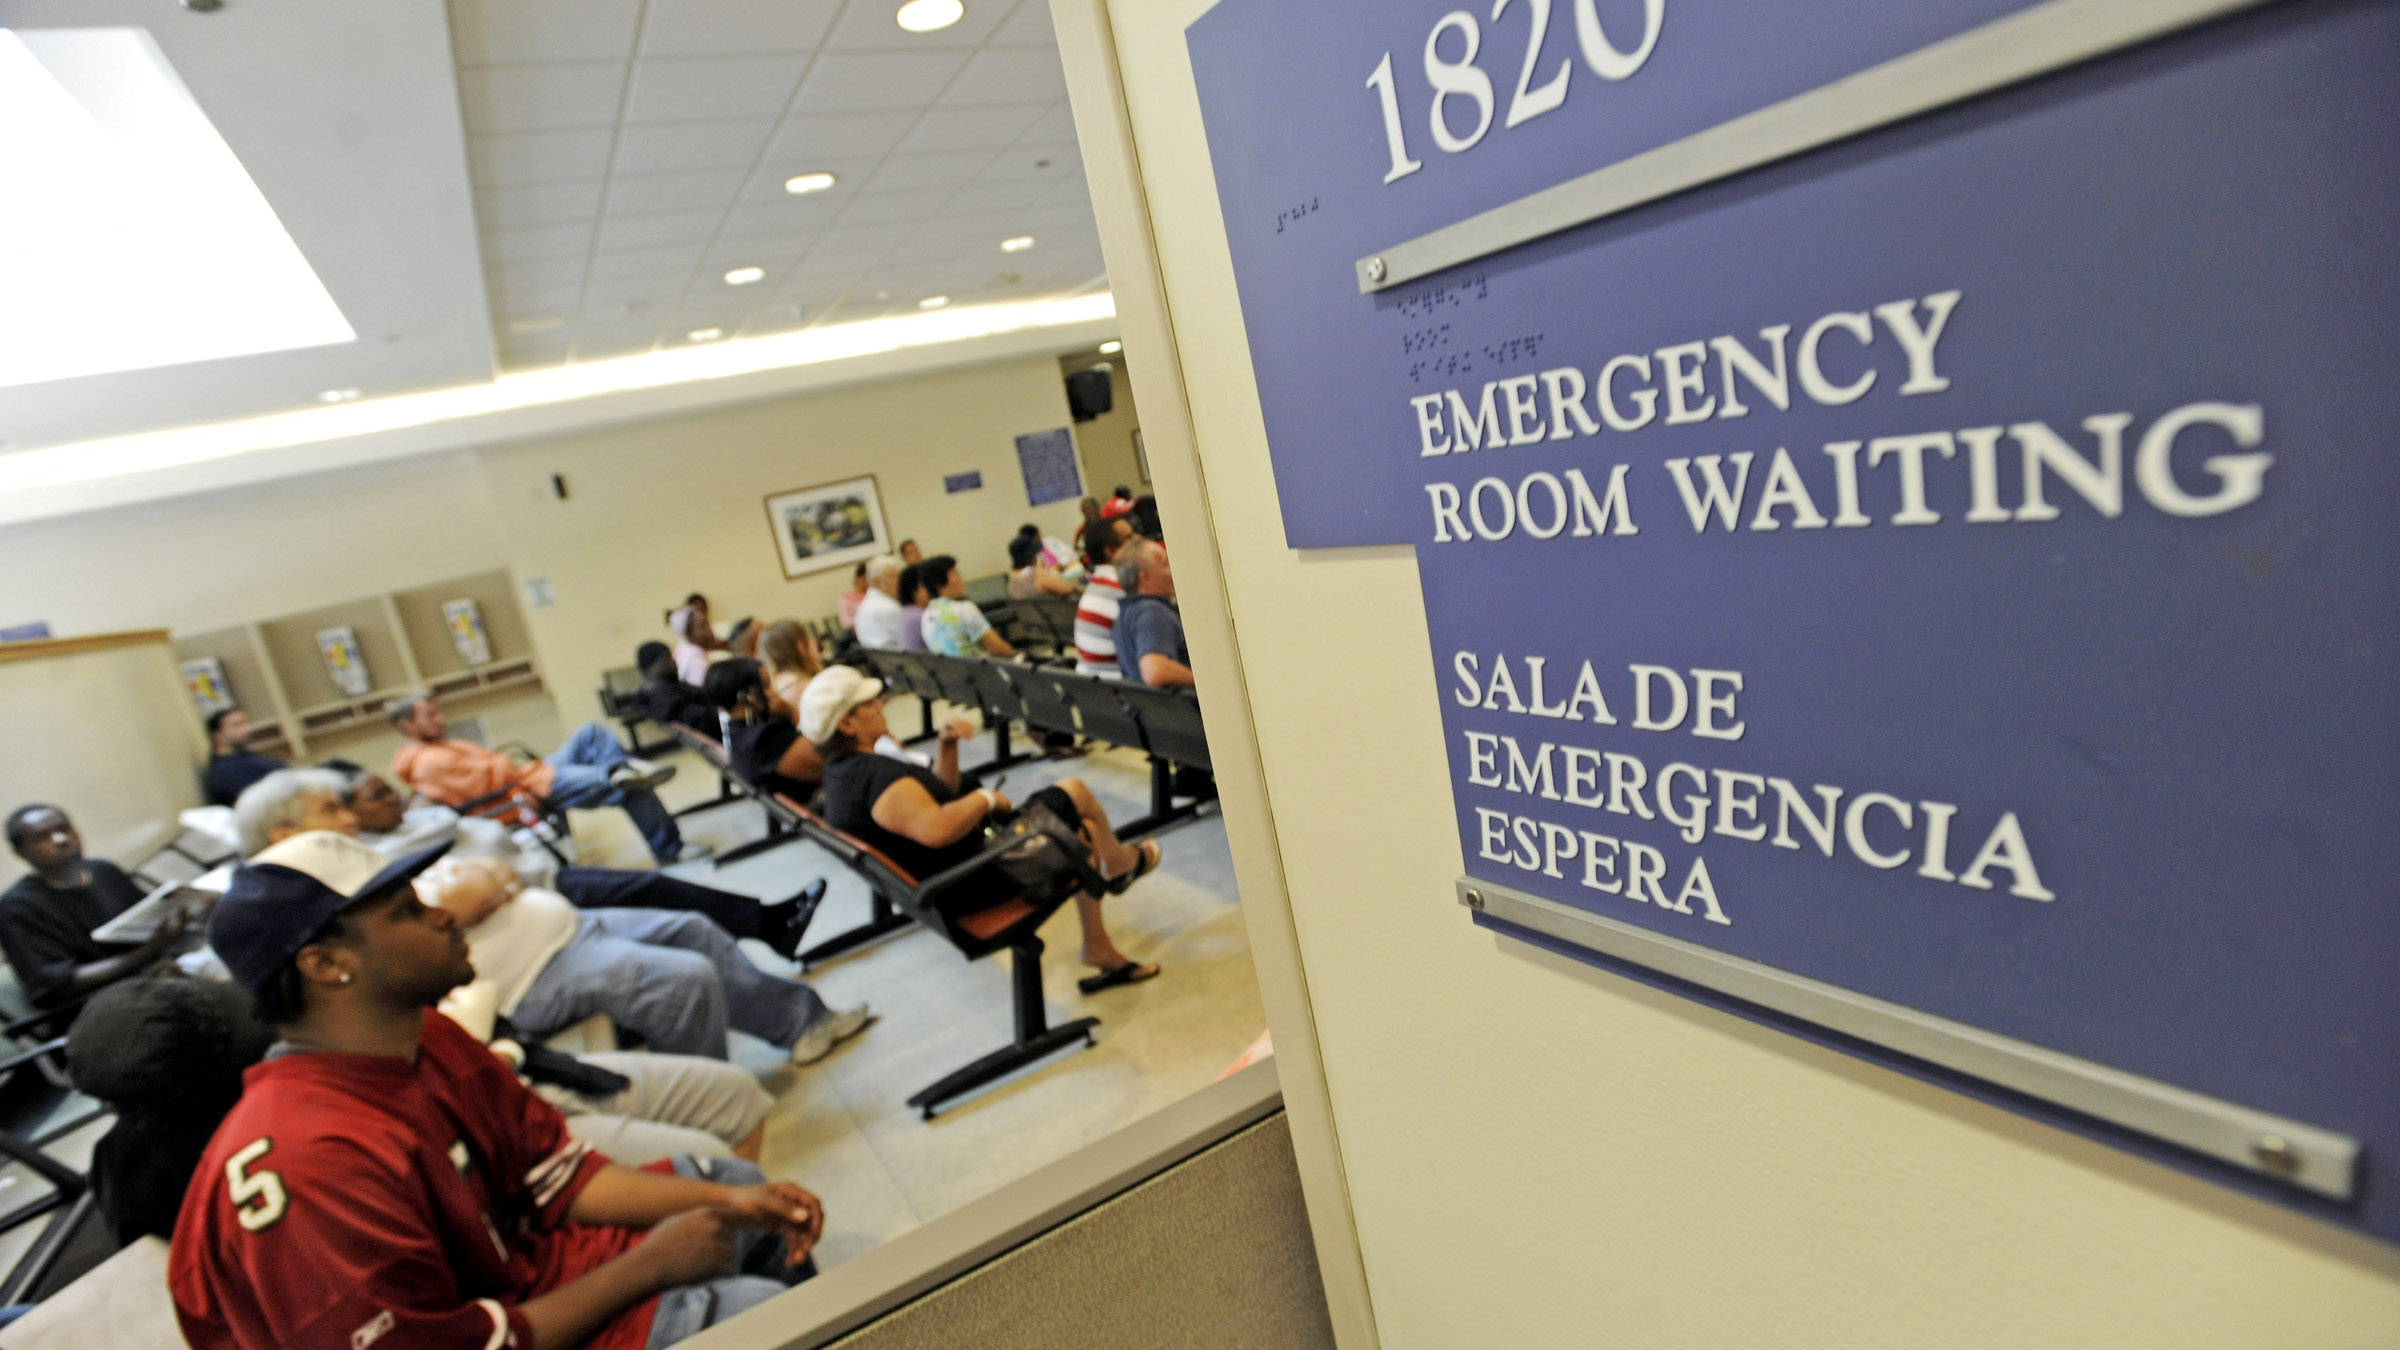 Patients waits in the emergency room waiting room at Cook County Hospital in Chicago.